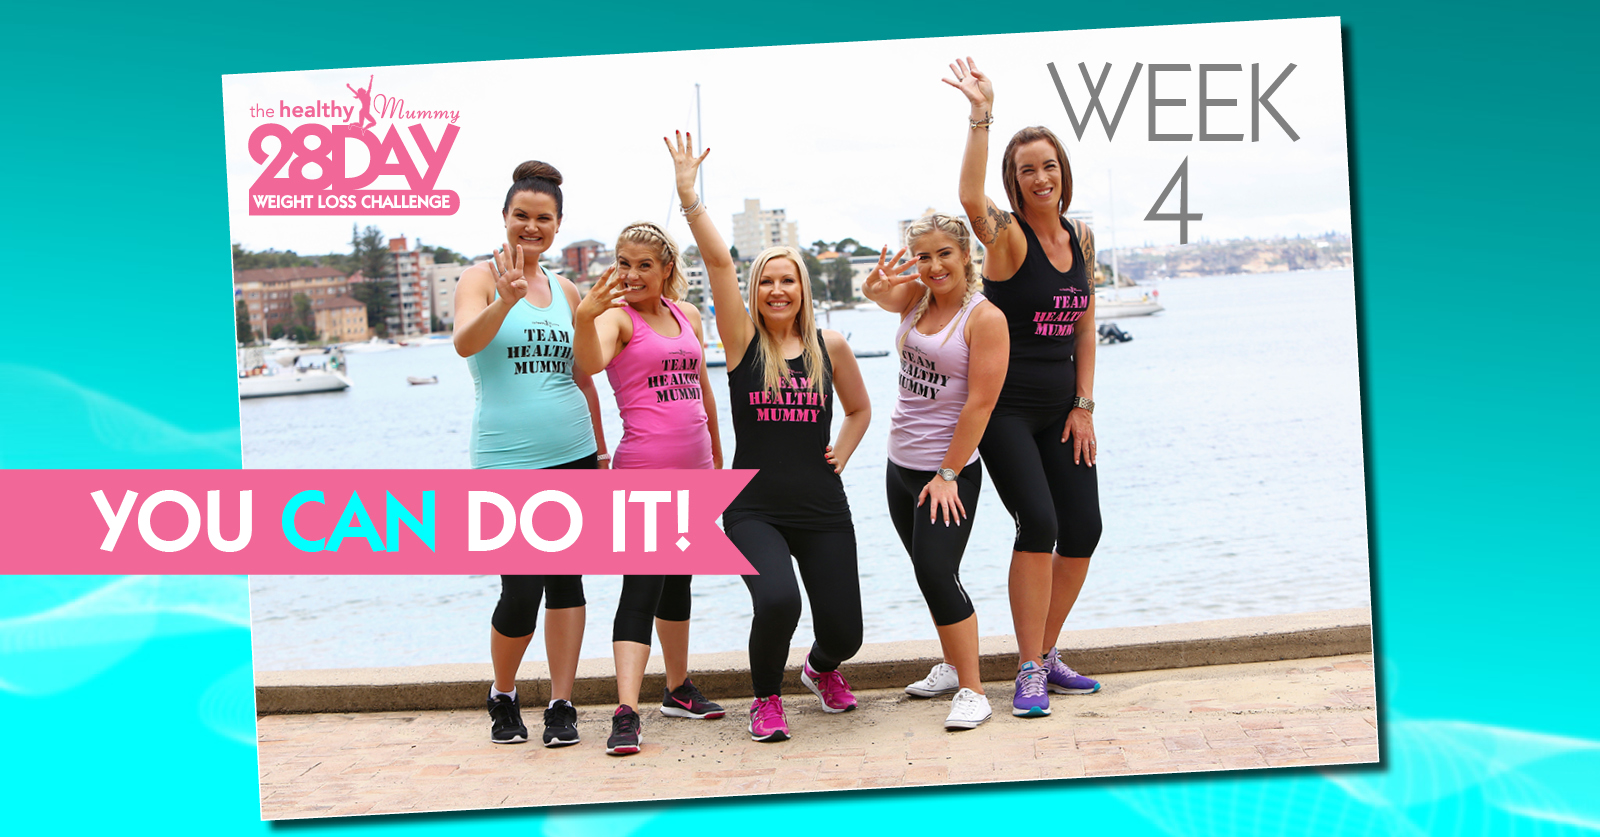 Ladies, Lets Get Ready To Smash Week 4 And Rev Up Our Metabolism Like Never  Before!